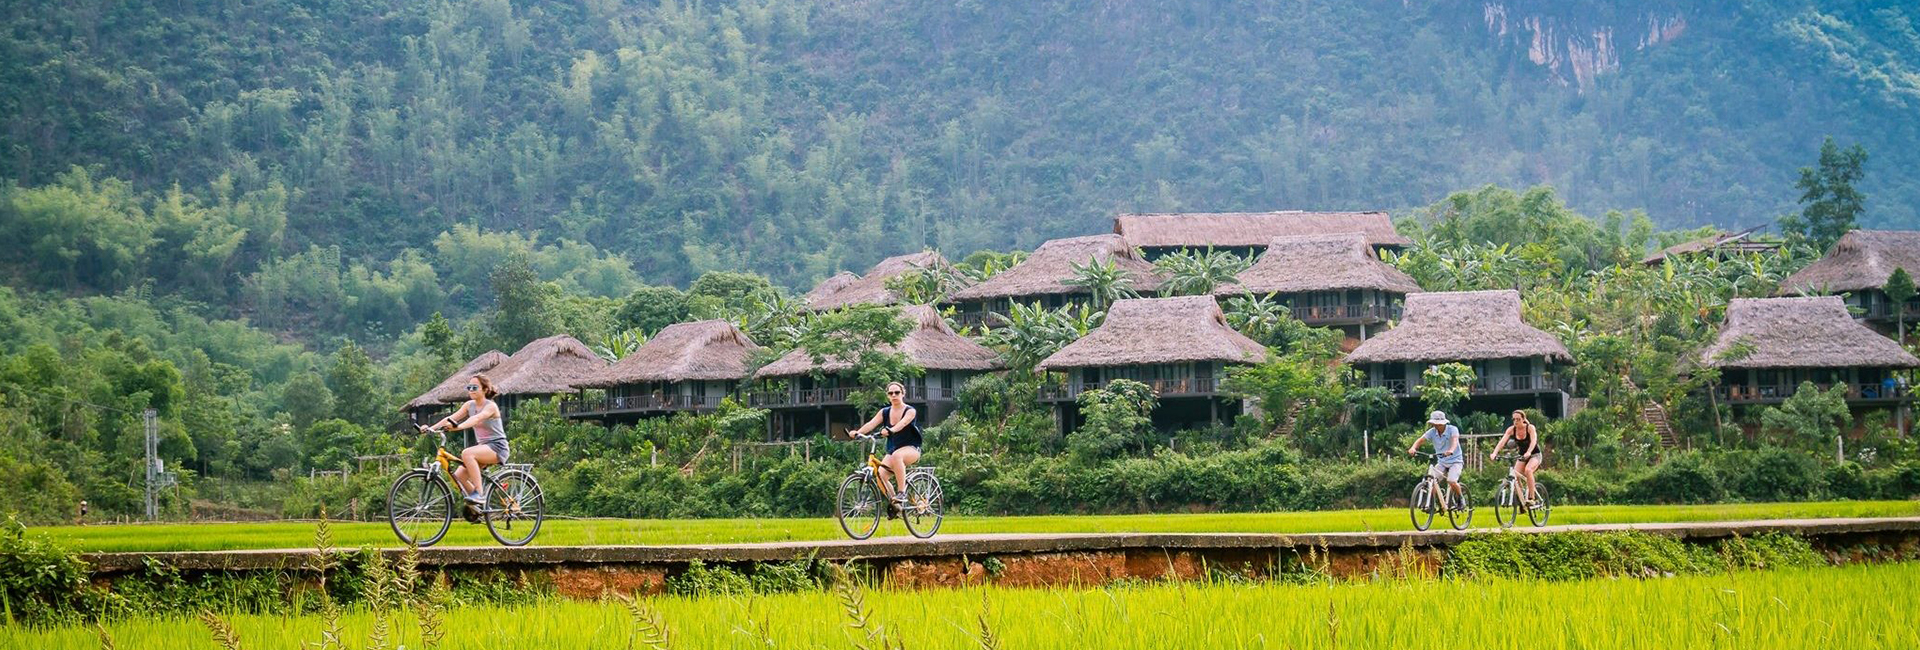 Exploring the beauty of Mai Chau valley in Vietnam